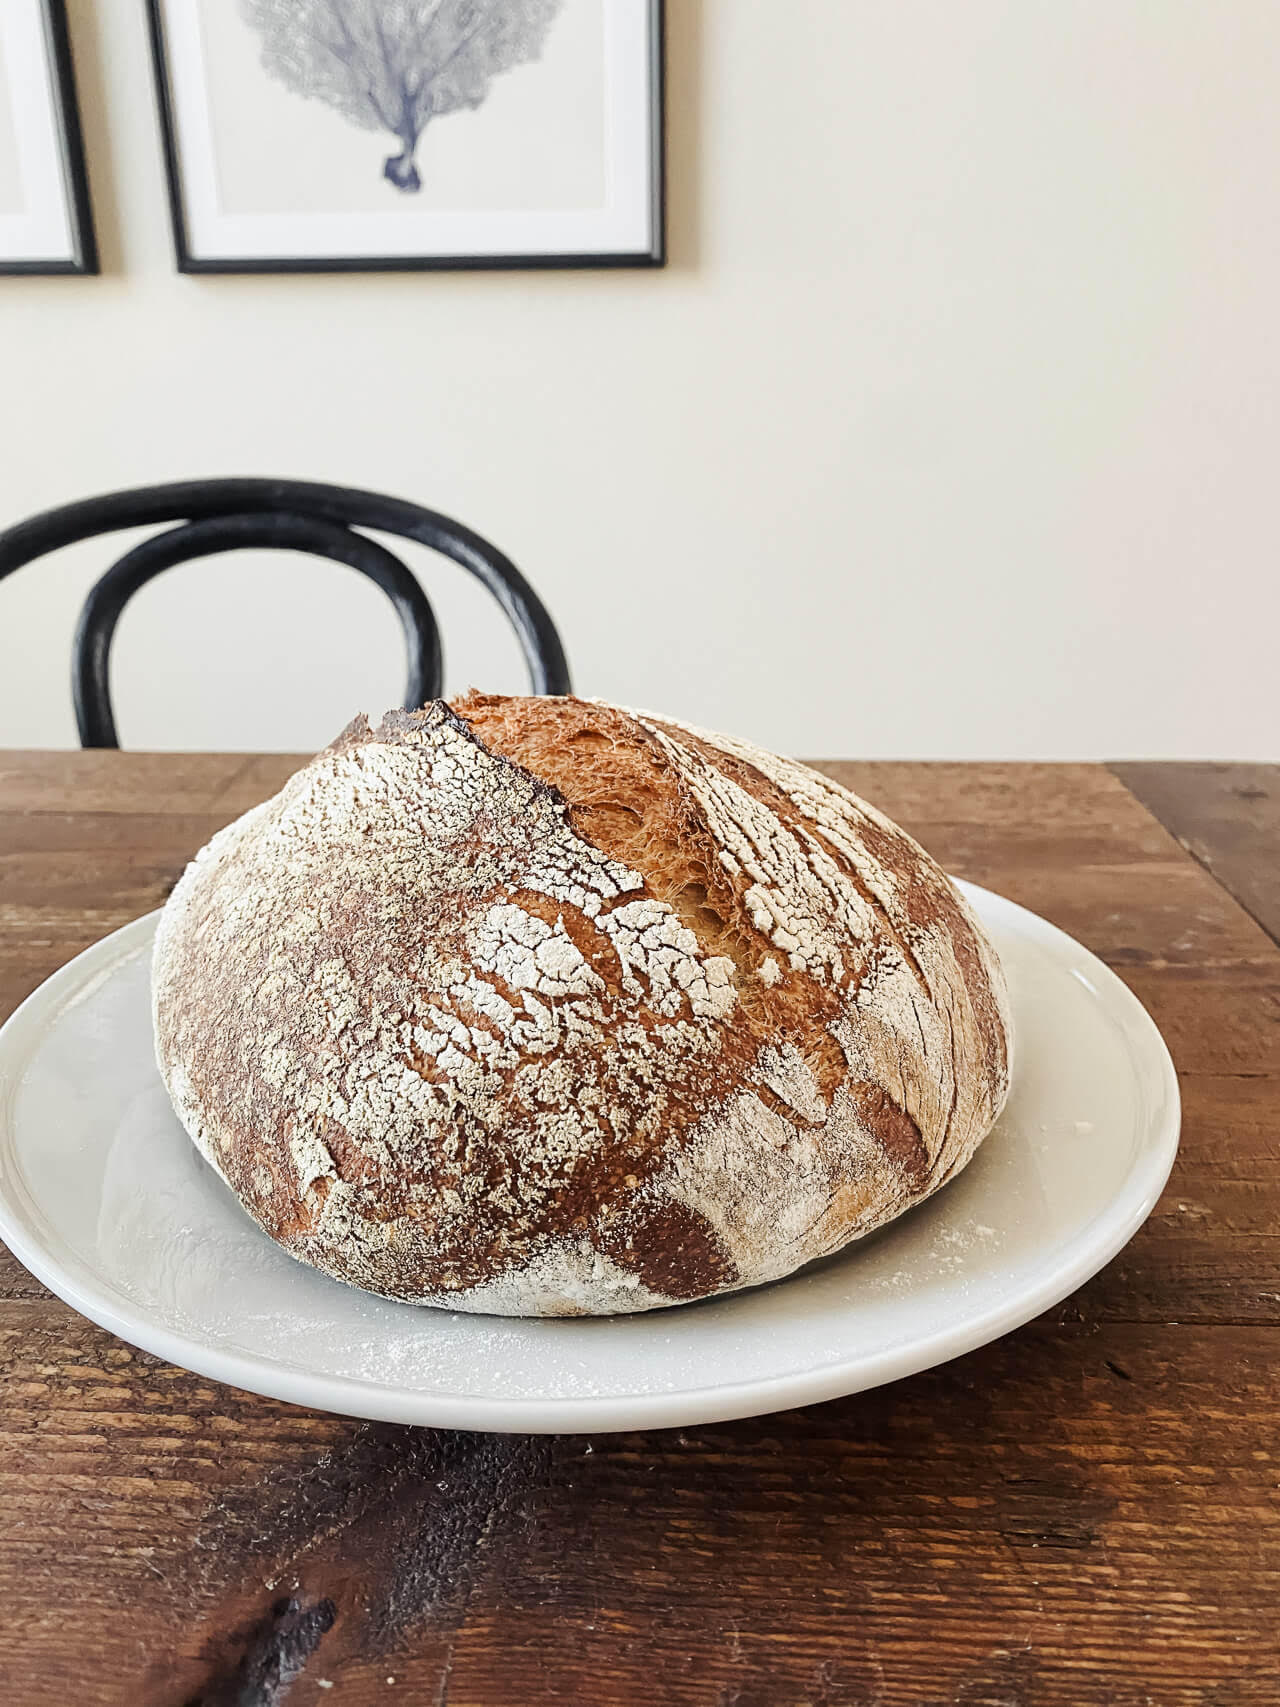 Here's how to get started baking sourdough bread! - M Loves M @marmar